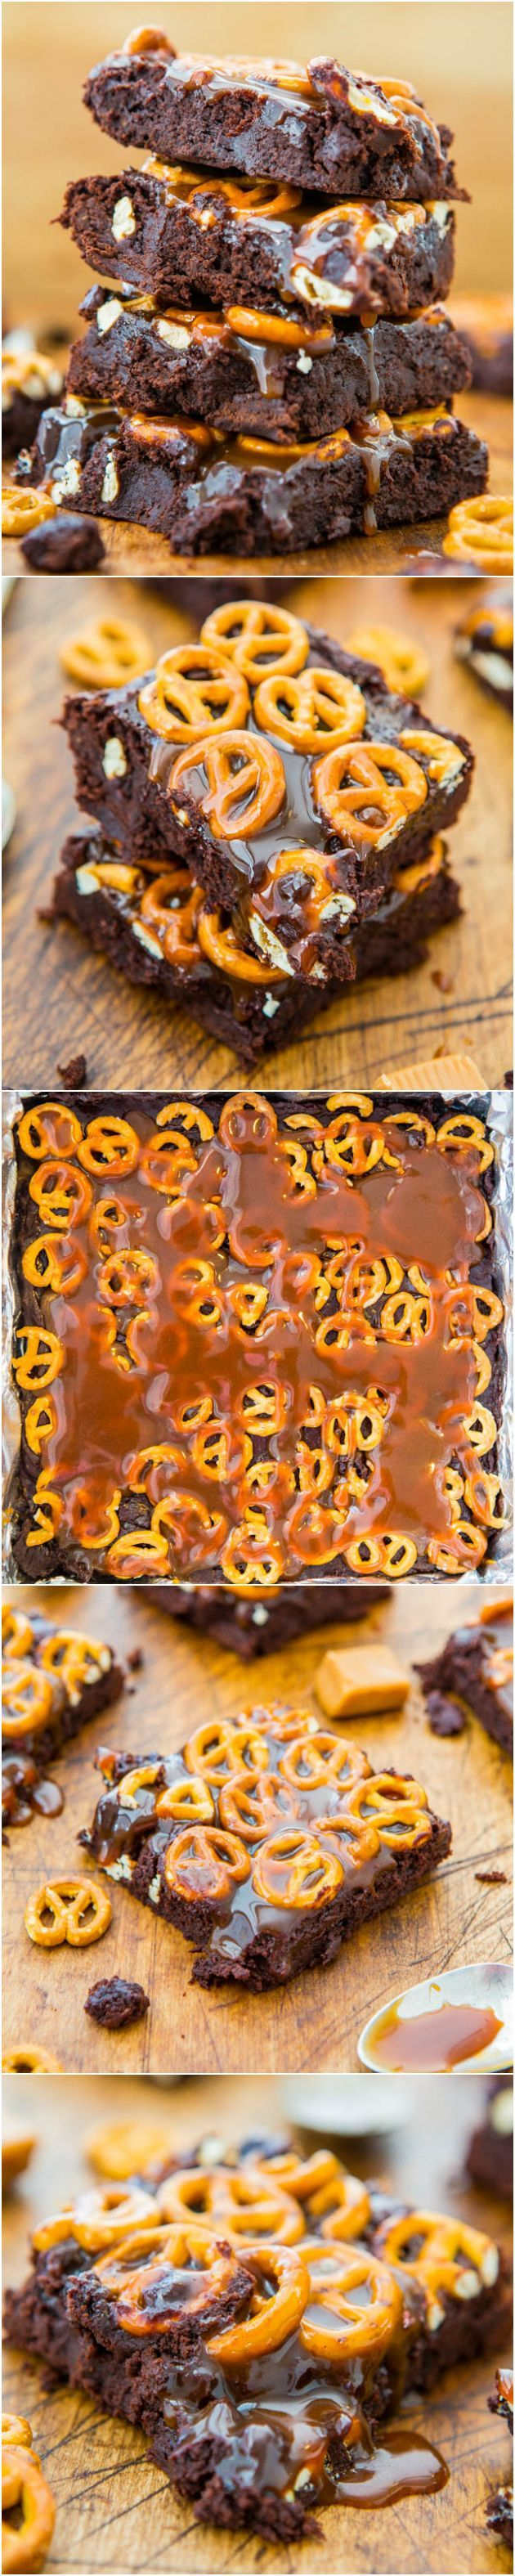 Caramel Pretzel Fudgy Brownies - Supremely fudgy scratch brownies ...